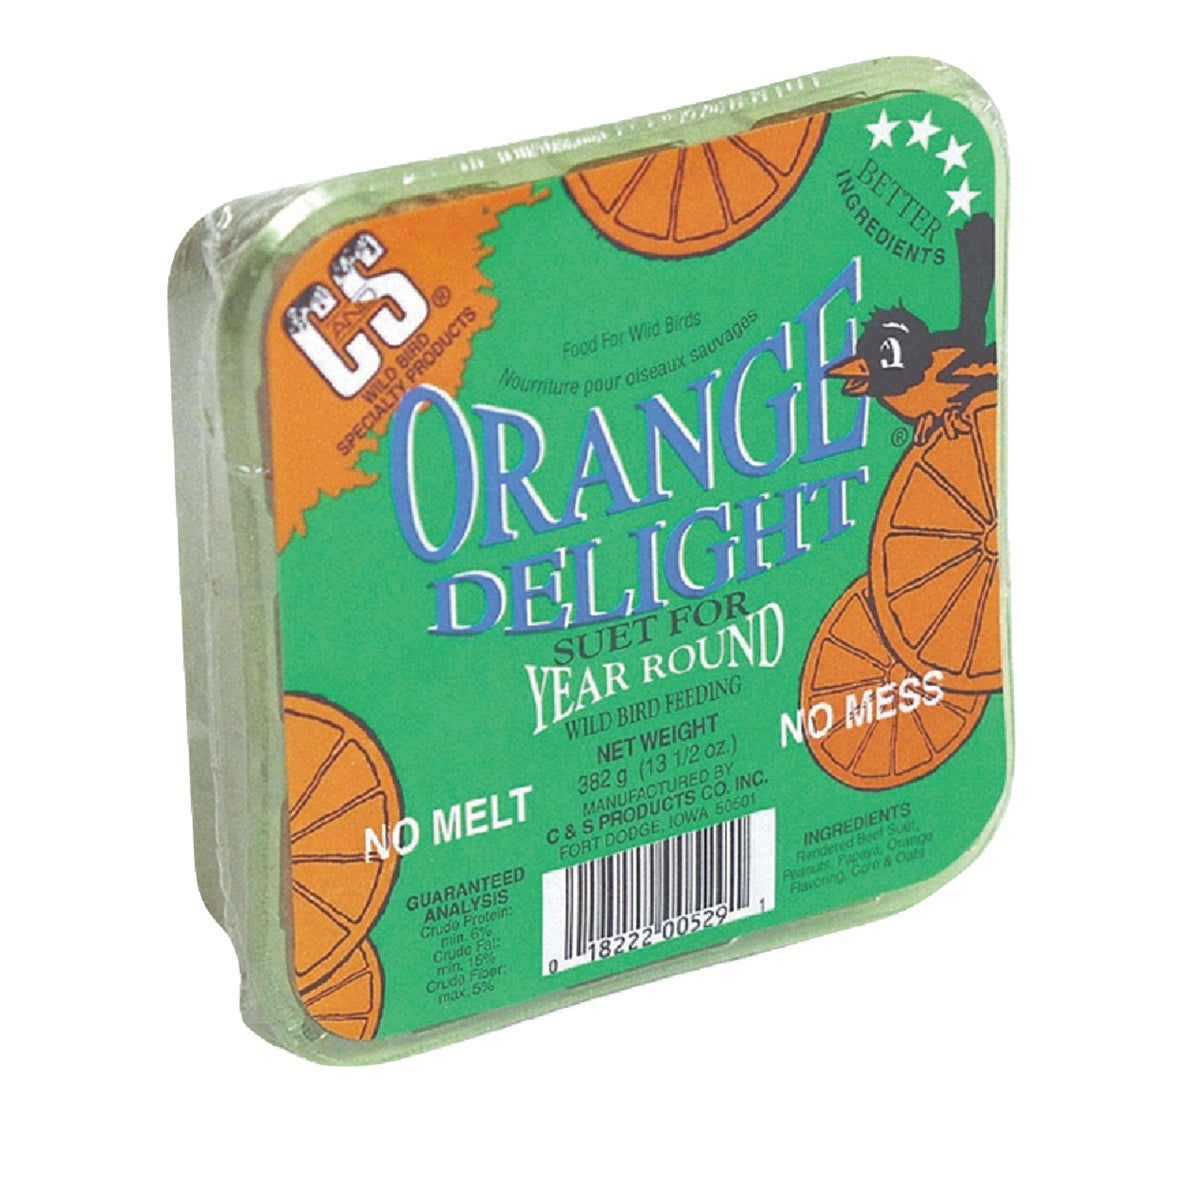 ORANGE DELIGHT SUET - 12529 by C & S Products Inc